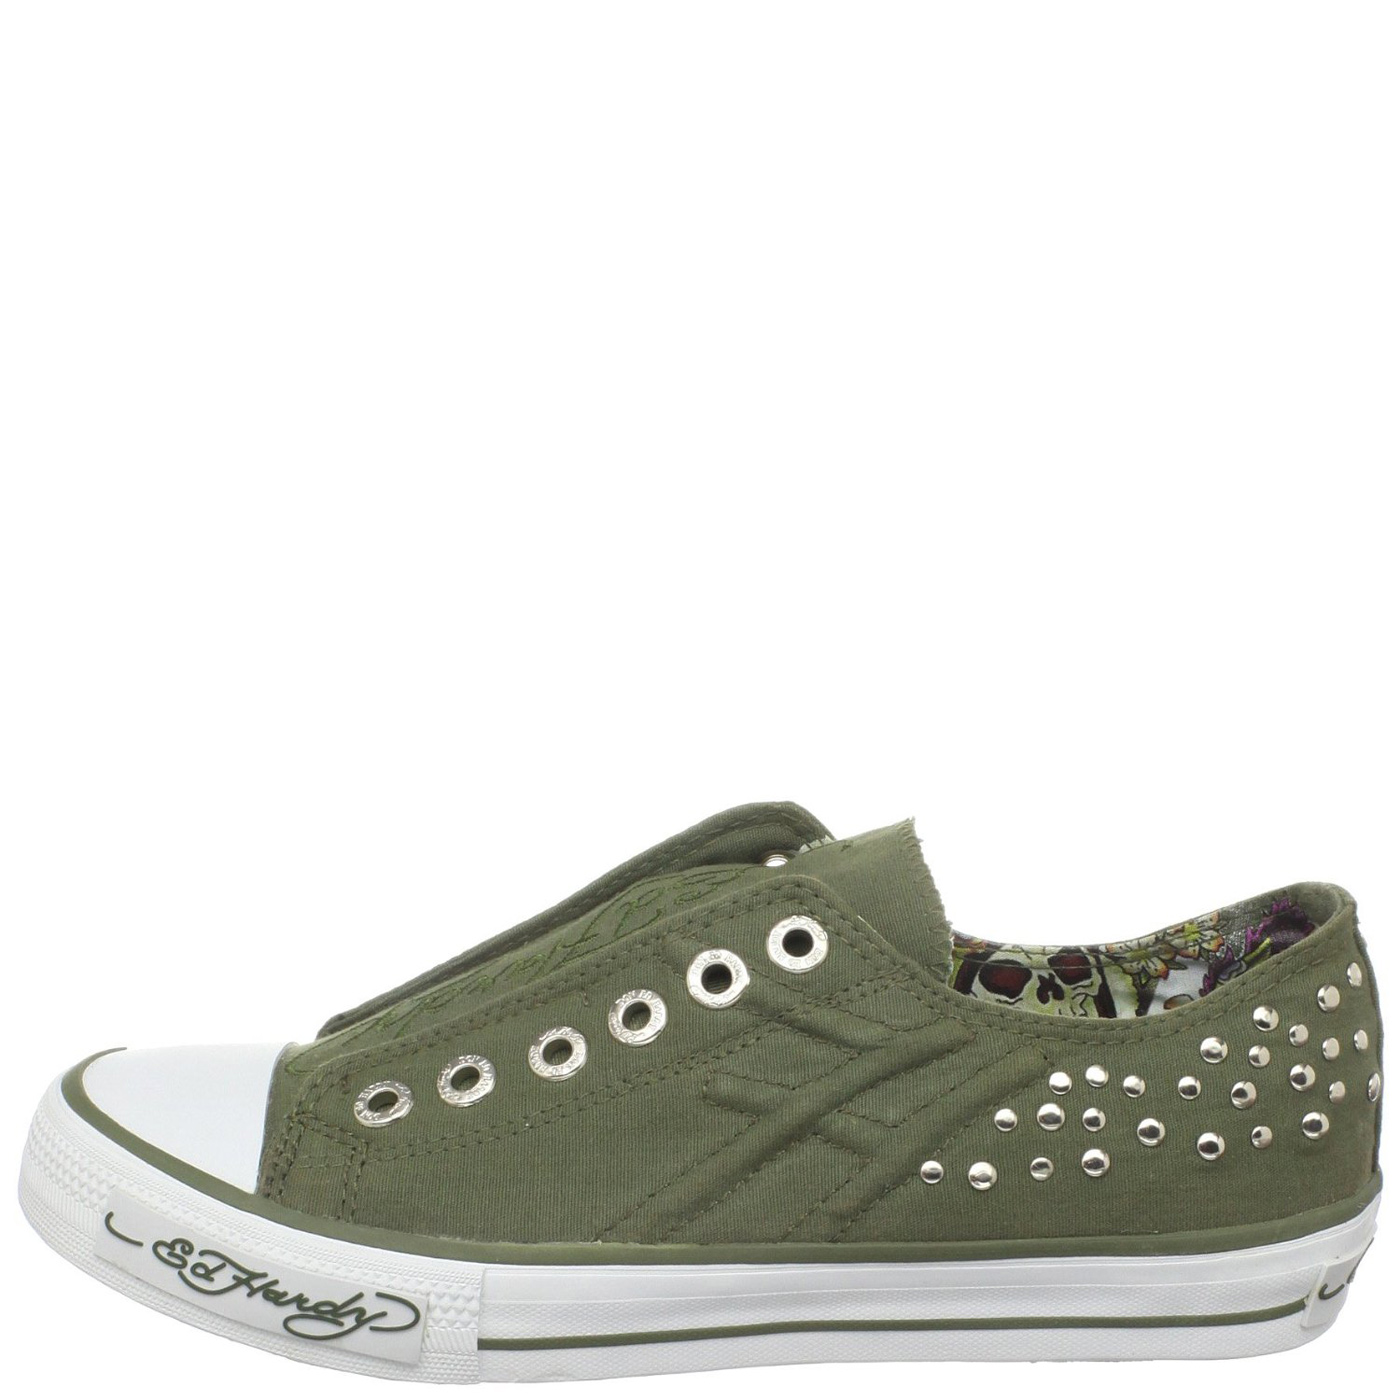 Ed Hardy Dakota Shoe for Women - Military